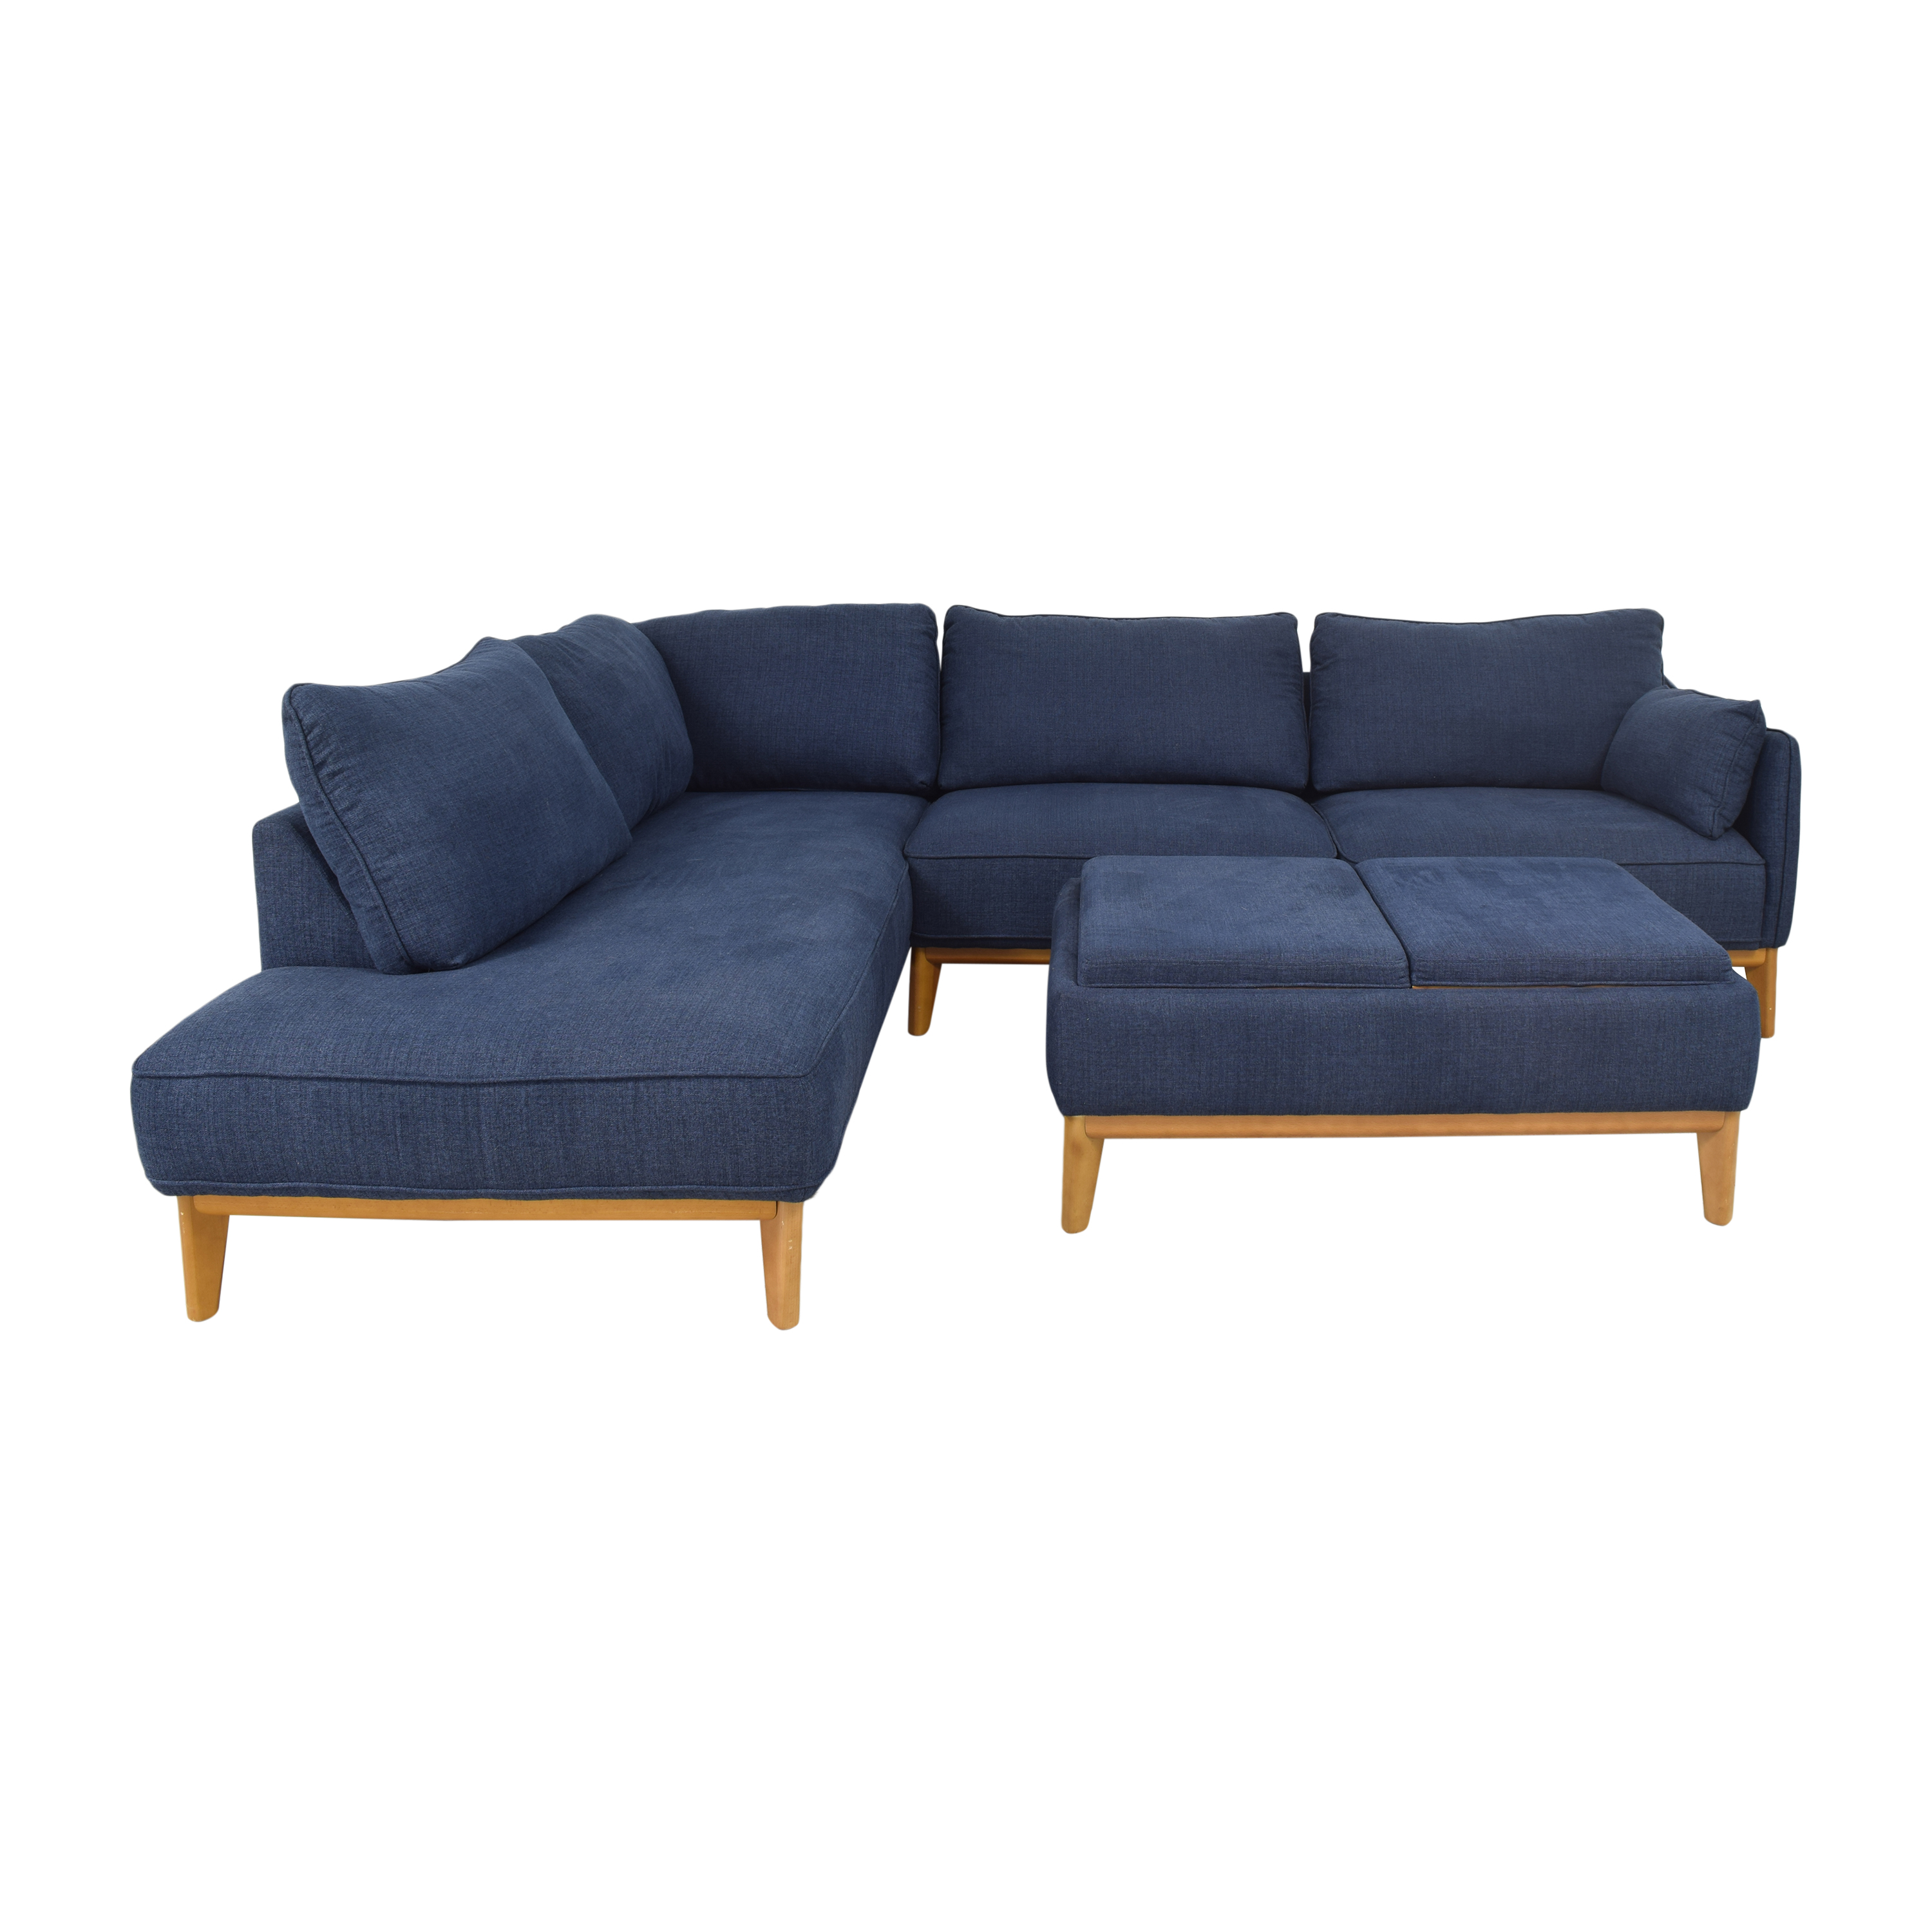 Macy's Jollene Sectional Sofa with Storage Cocktail Ottoman / Sectionals